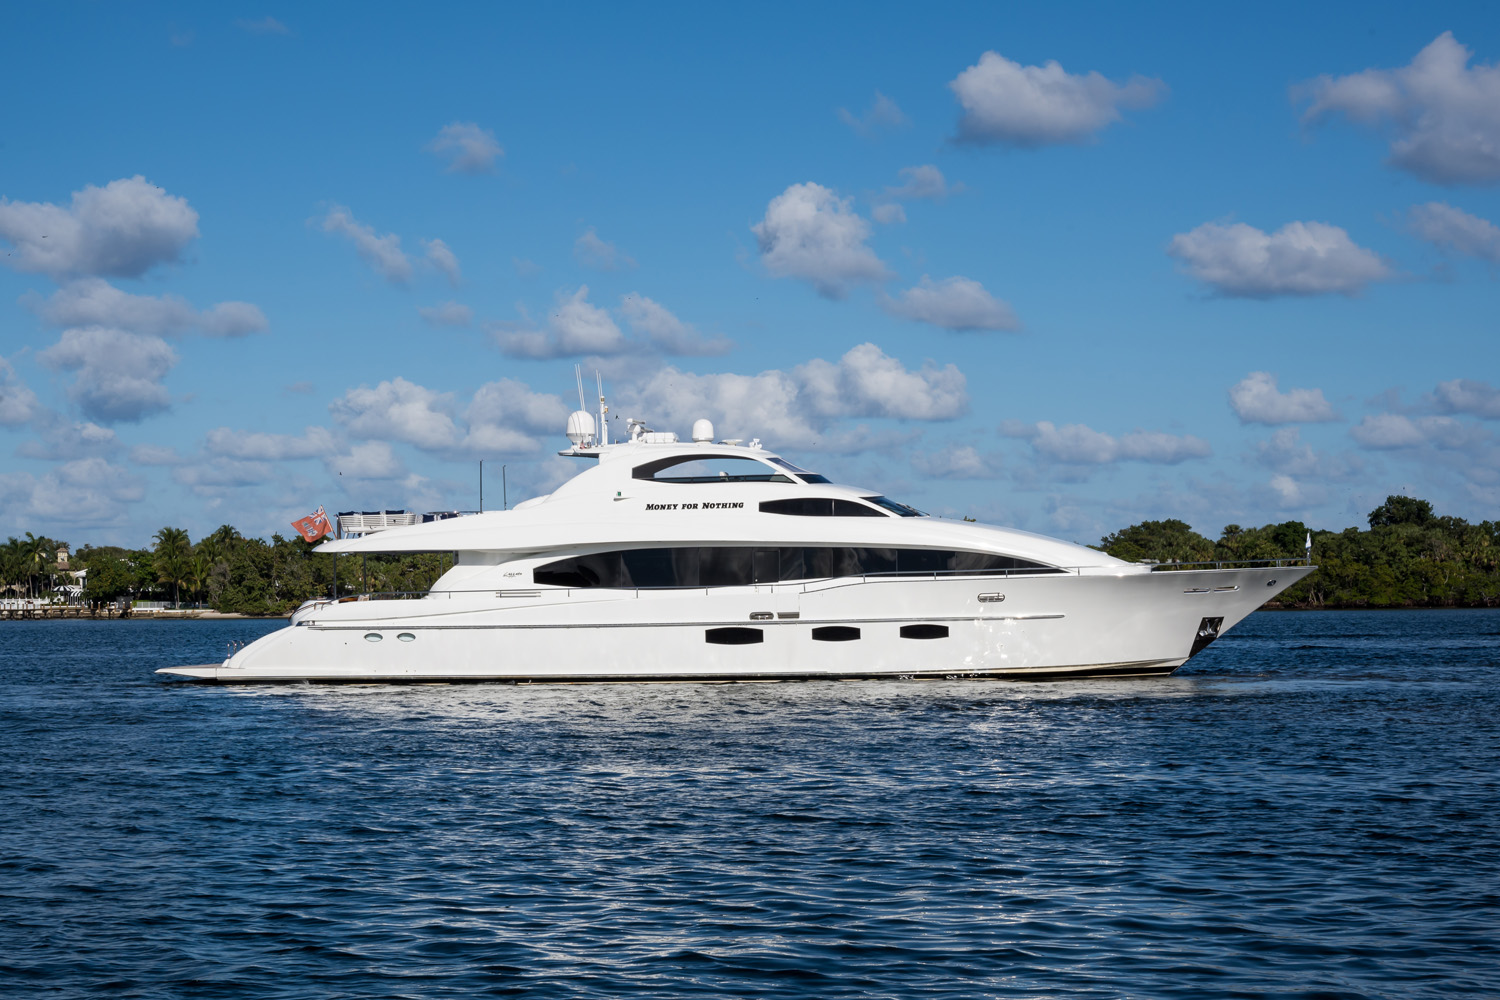 MONEY-FOR-NOTHING-yacht-for-sale-charter-01.jpg